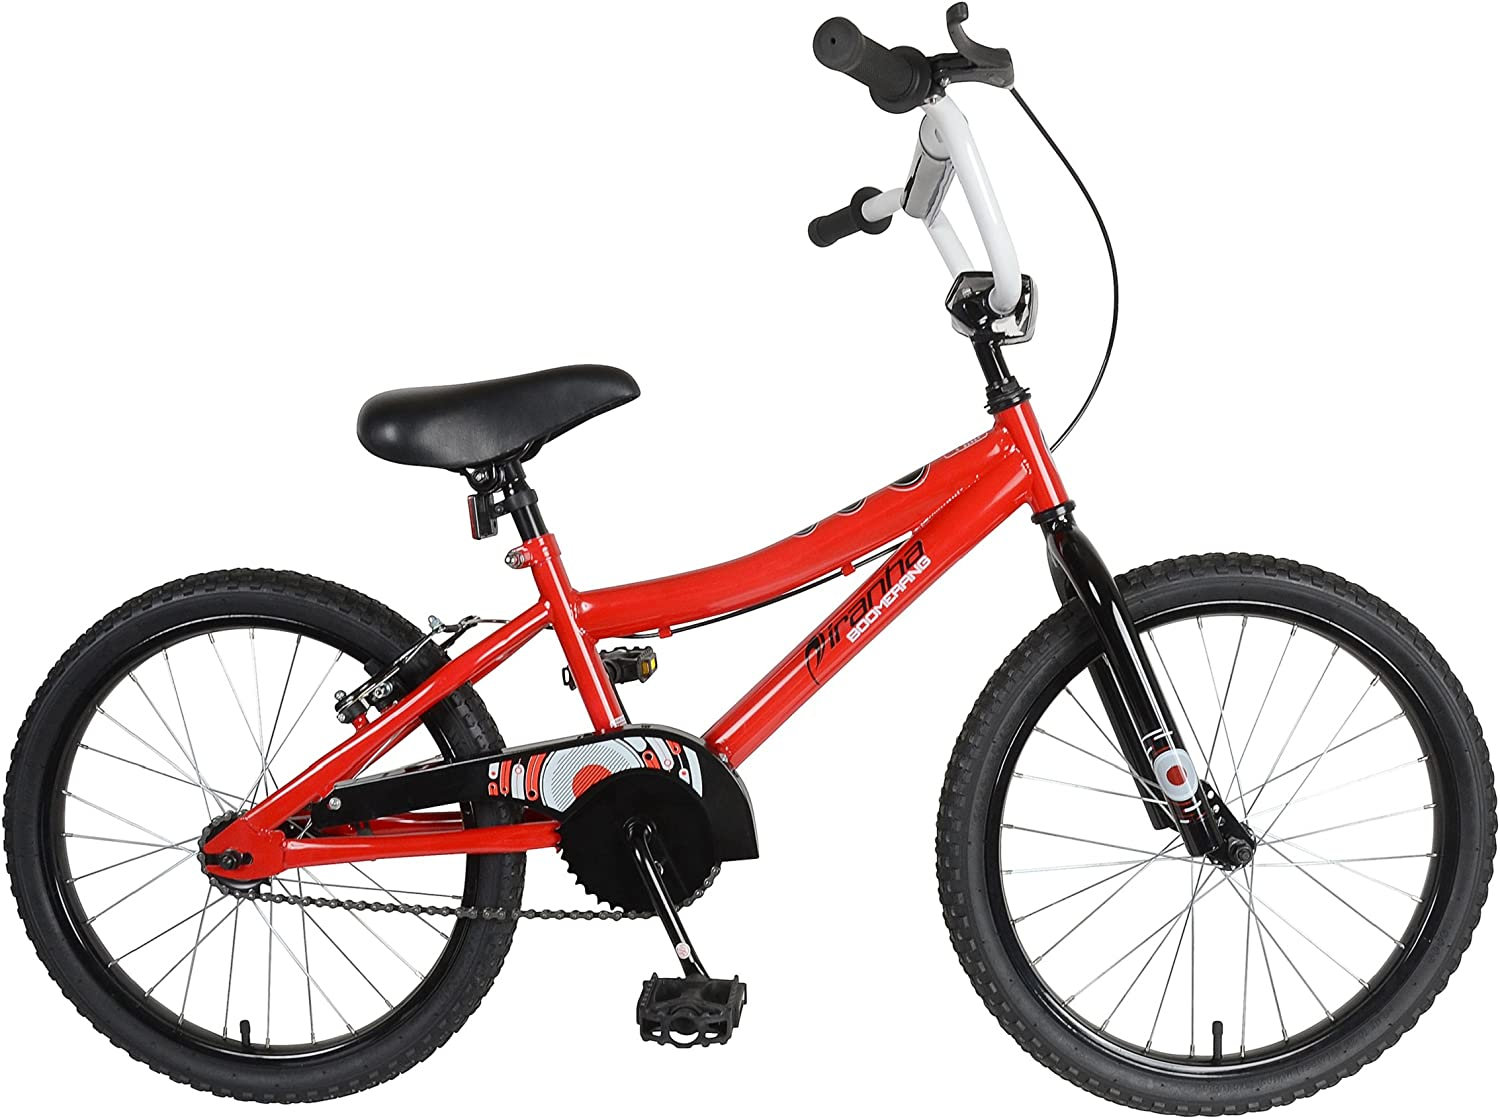 Piranha Boomerang 20 Kids Bicycle, Red by Piranha: Amazon.es ...